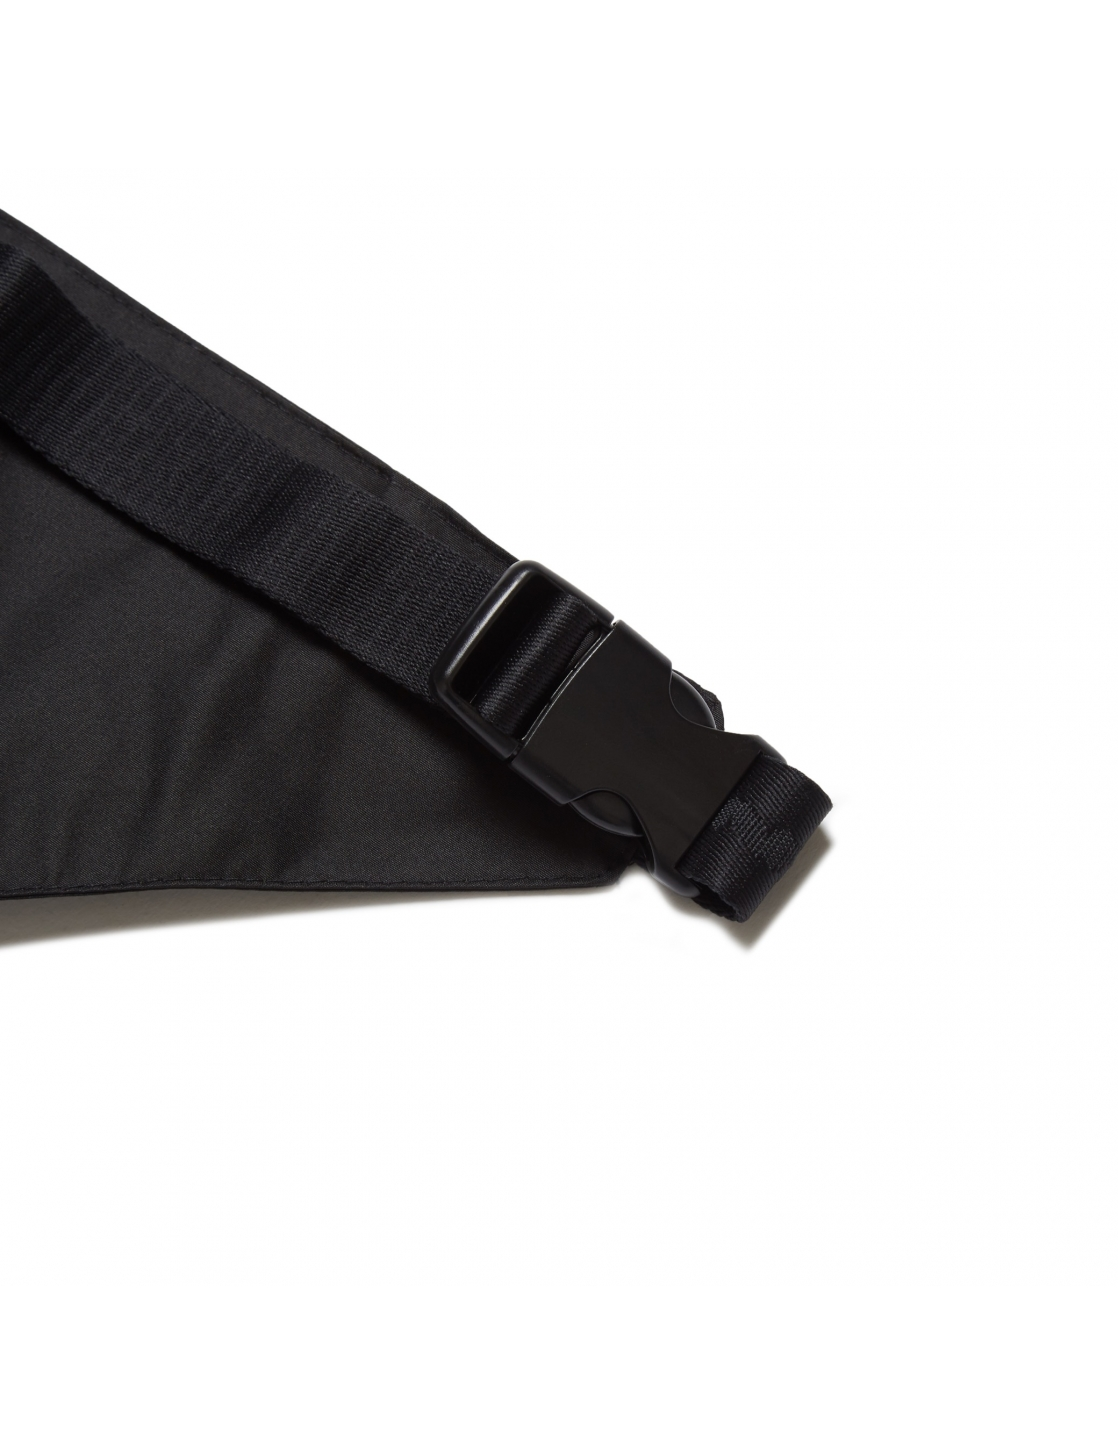 ZNY NOW IS THE TIME Waist Bag